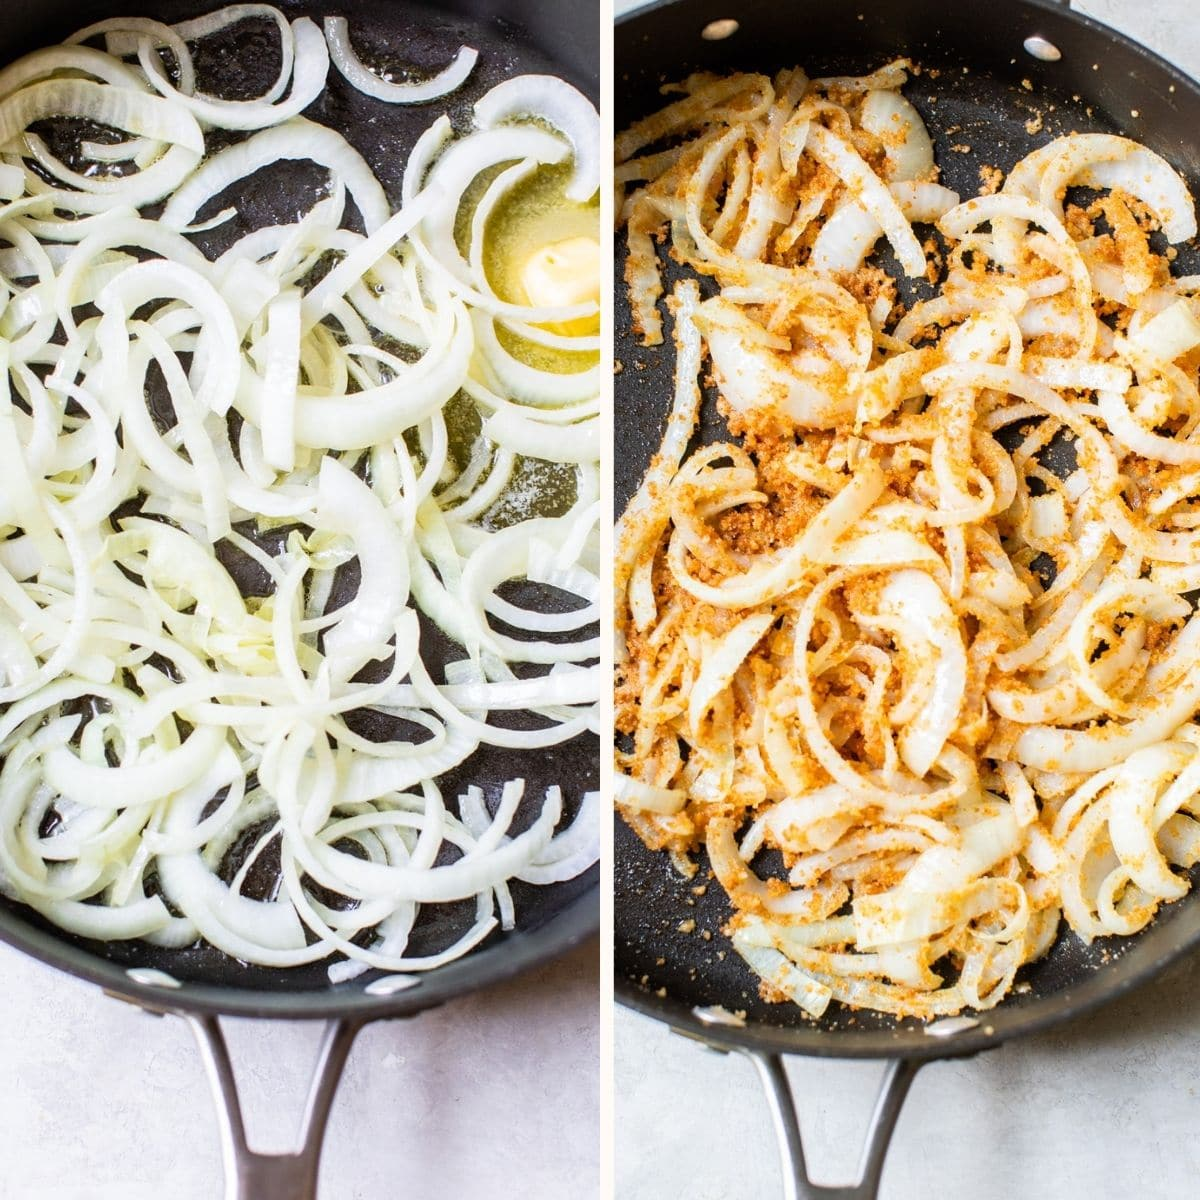 onions and breadcrumbs in a skillet